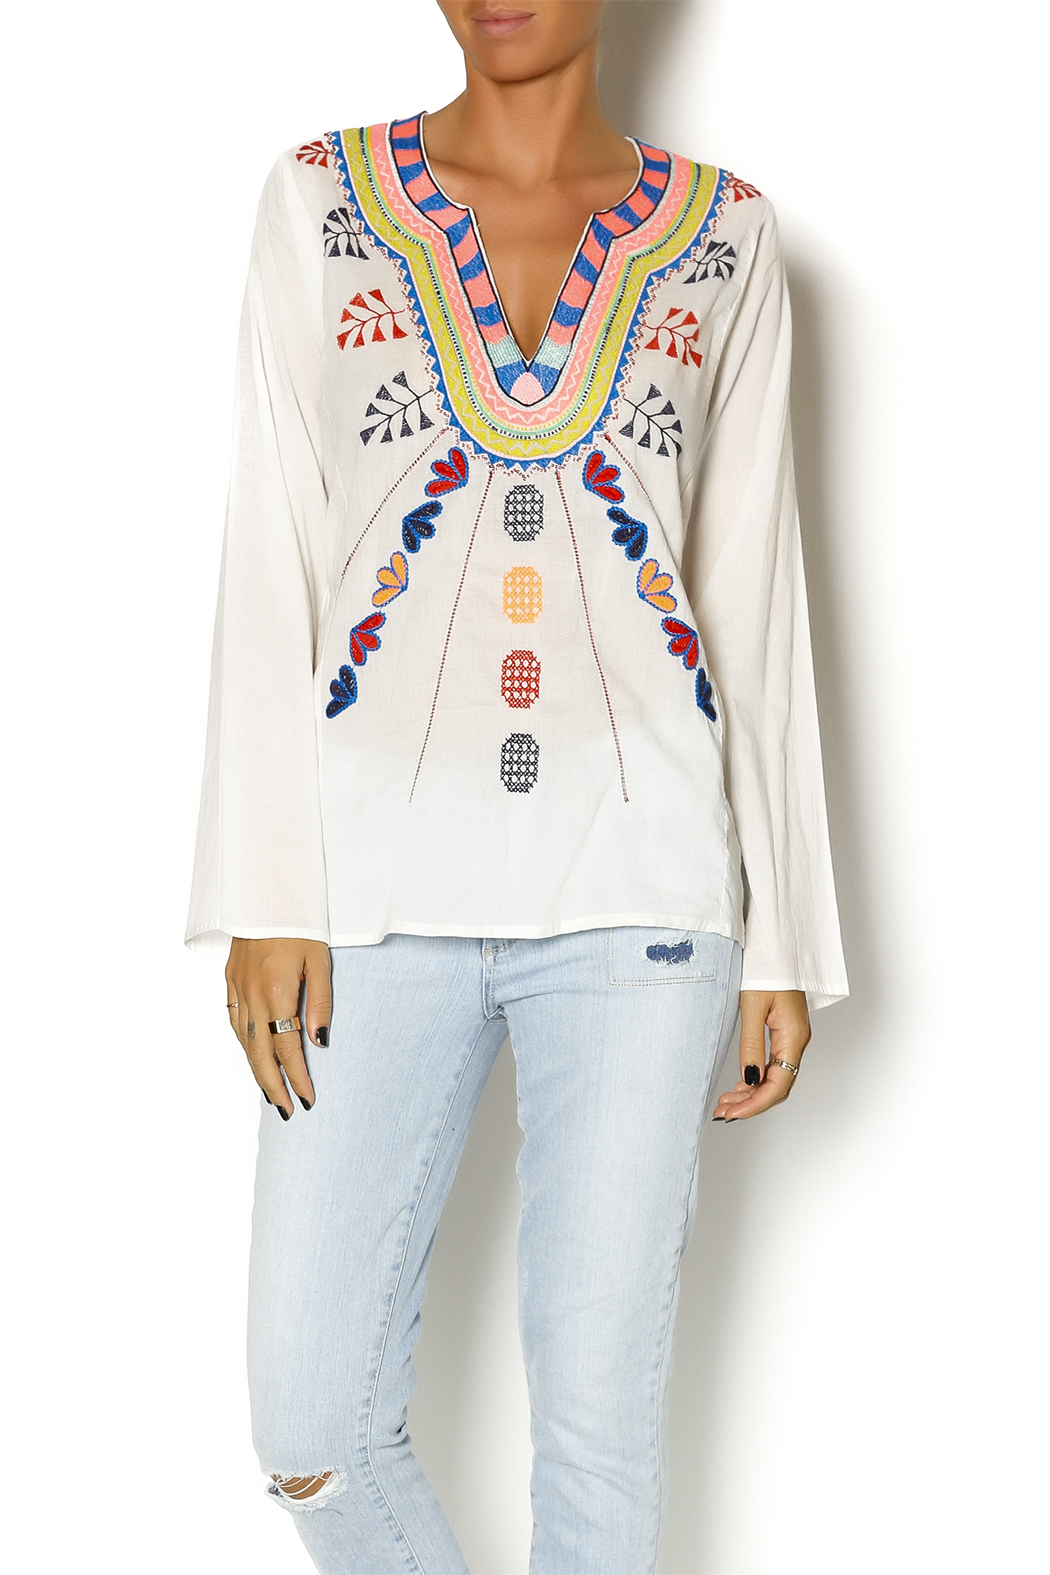 Christophe Sauvat Embroidered Ethnic Top - Front Cropped Image